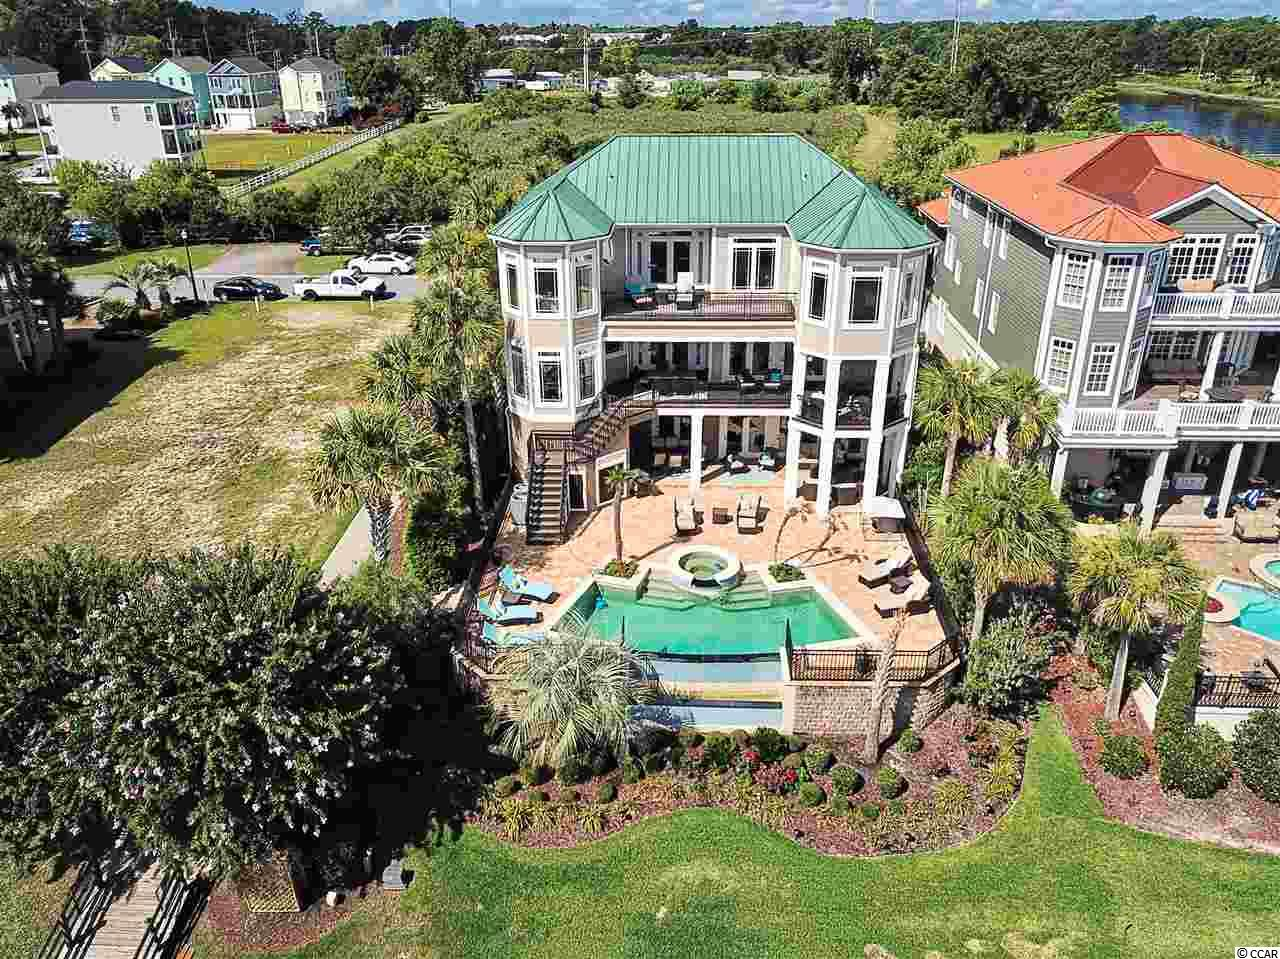 "Professionally decorated, fully furnished 4 BR/ 5 BA home with elevator, heated infinity pool and spa, overlooking the Intracoastal Waterway and Marina! Simply too many upgrades to list but includes, 24"" travertine tile flooring, custom carved cabinetry and paneled refrigerator, security system, custom-tiled glass seamless showers, upgraded lighting, Viking range, double ovens, double dishwashers, a 2nd kitchen on the ground floor with another dishwasher/wetbar/wine cooler, 2 Rinnai tankless water heaters, 500 gallon propane tank, 2 laundry rooms, central vacuum, dual rain showers in the master bath and a claw foot tub, loads of storage including a pool equipment room, and nook under the stairs currently used as a play space.  Freshly painted inside and out. Custom designed window treatments and bedding.  This home truly shows like a model and is move-in ready! Approximately 30 restaurants, a variety of grocery/drug stores, Walmart, and the beach are close by and can be accessed via golf cart!  Fabulous location and absolutely stunning home.  Do not miss this one."